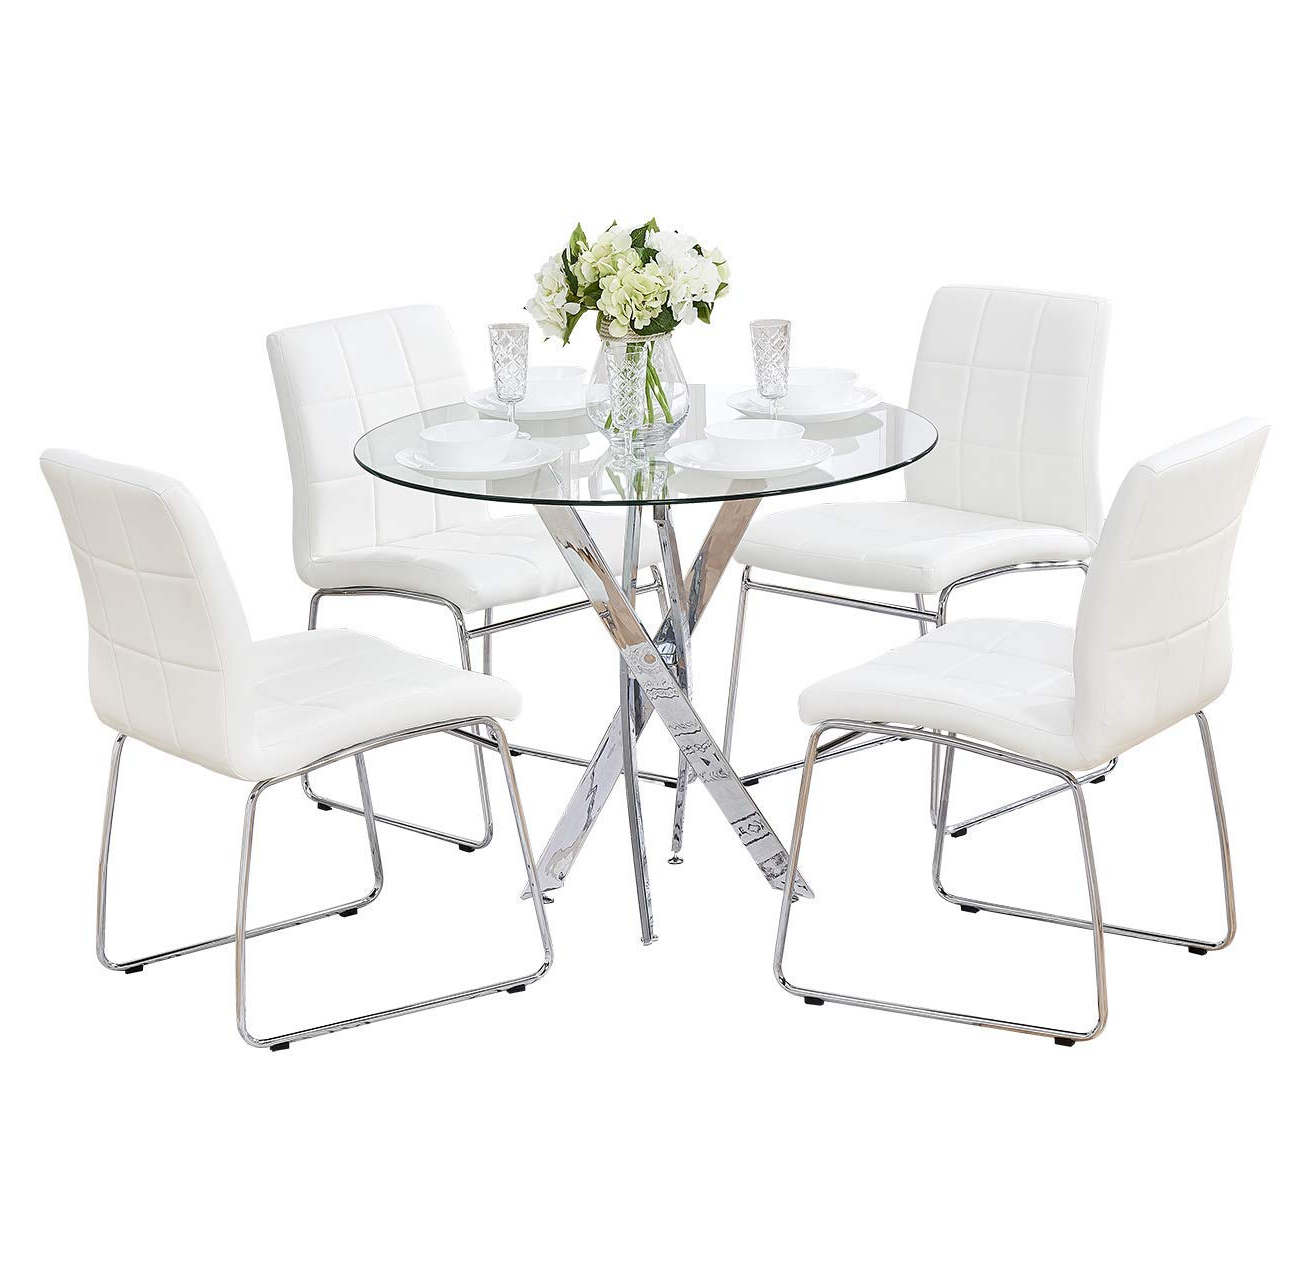 Sicotas 5 Pcs Round Dining Table Set,tempered Glass Kitchen Table And 4 Faux Leather Chairs With Chrome Legs, Modern Dining Room Table Set For Kitchen With Widely Used 4 Seater Round Wooden Dining Tables With Chrome Legs (View 25 of 30)